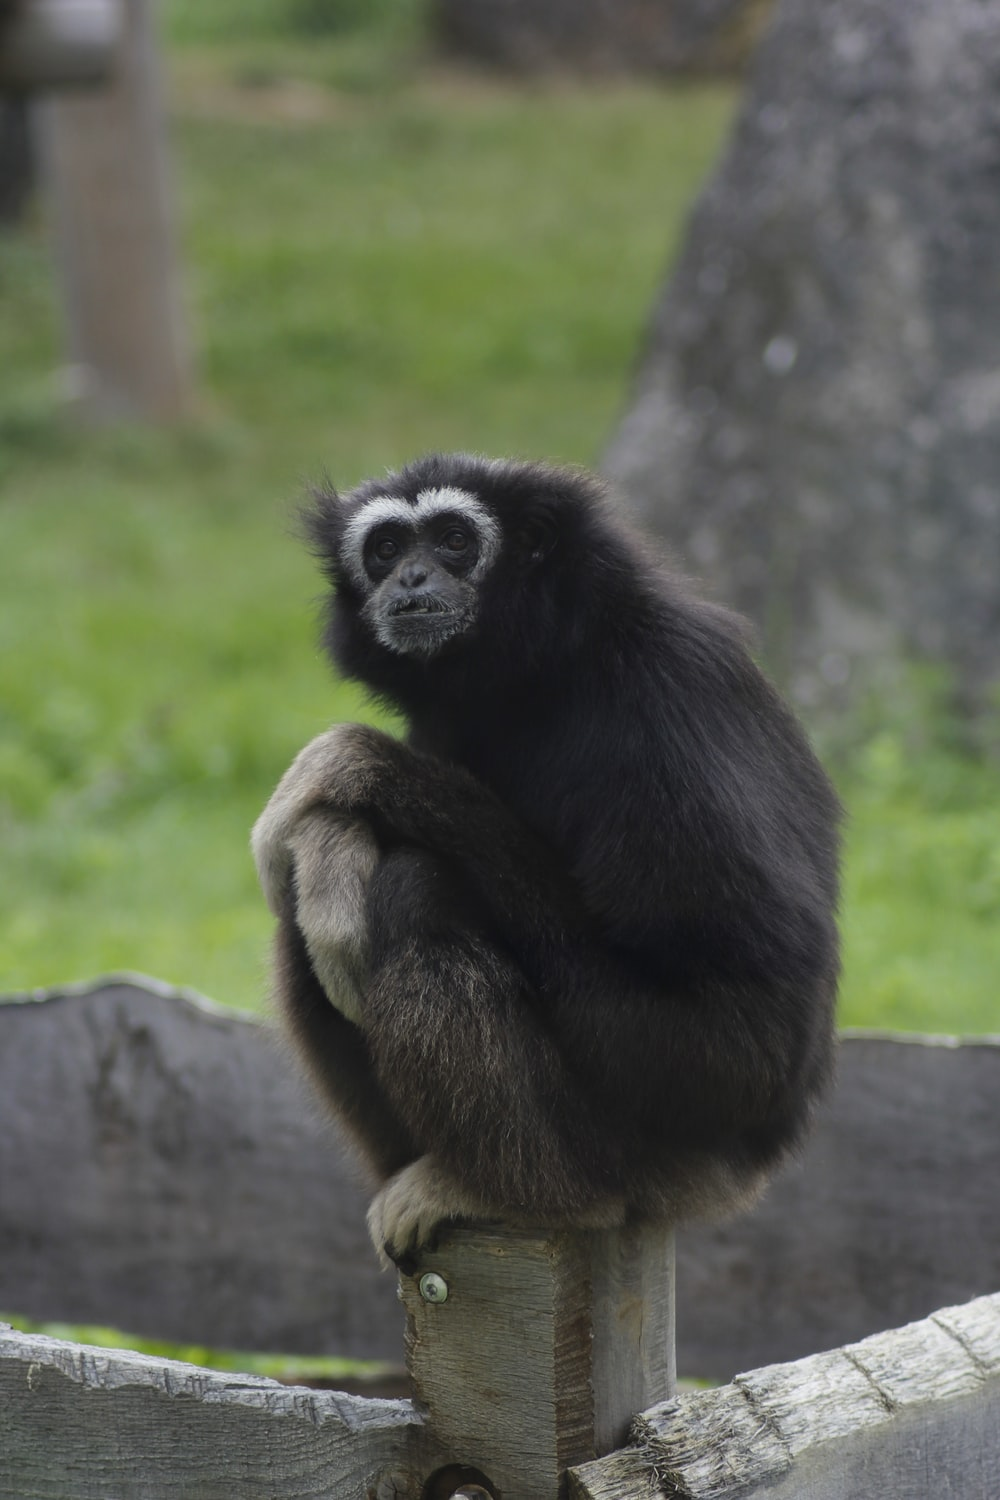 black and brown monkey on brown tree branch during daytime